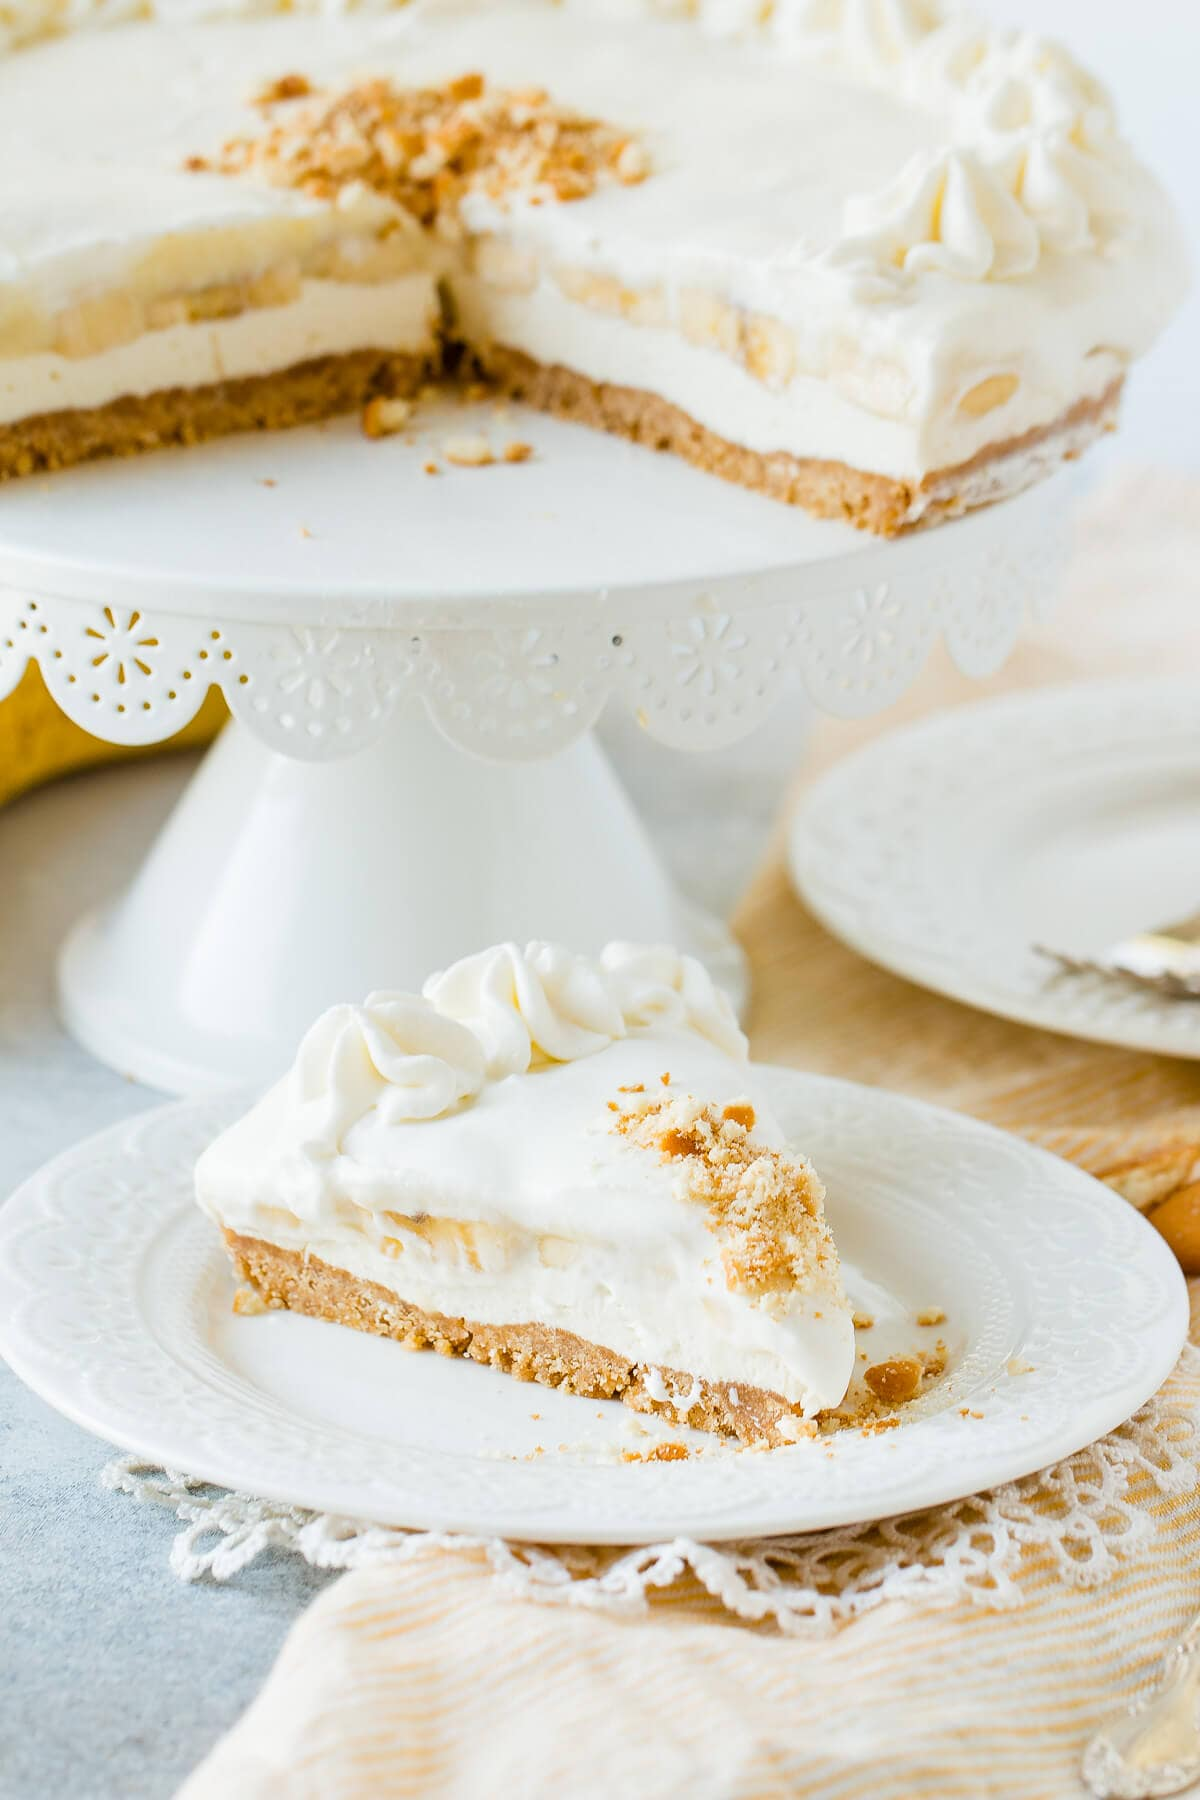 slice of banana pudding cheesecake on plate in front of cake stand